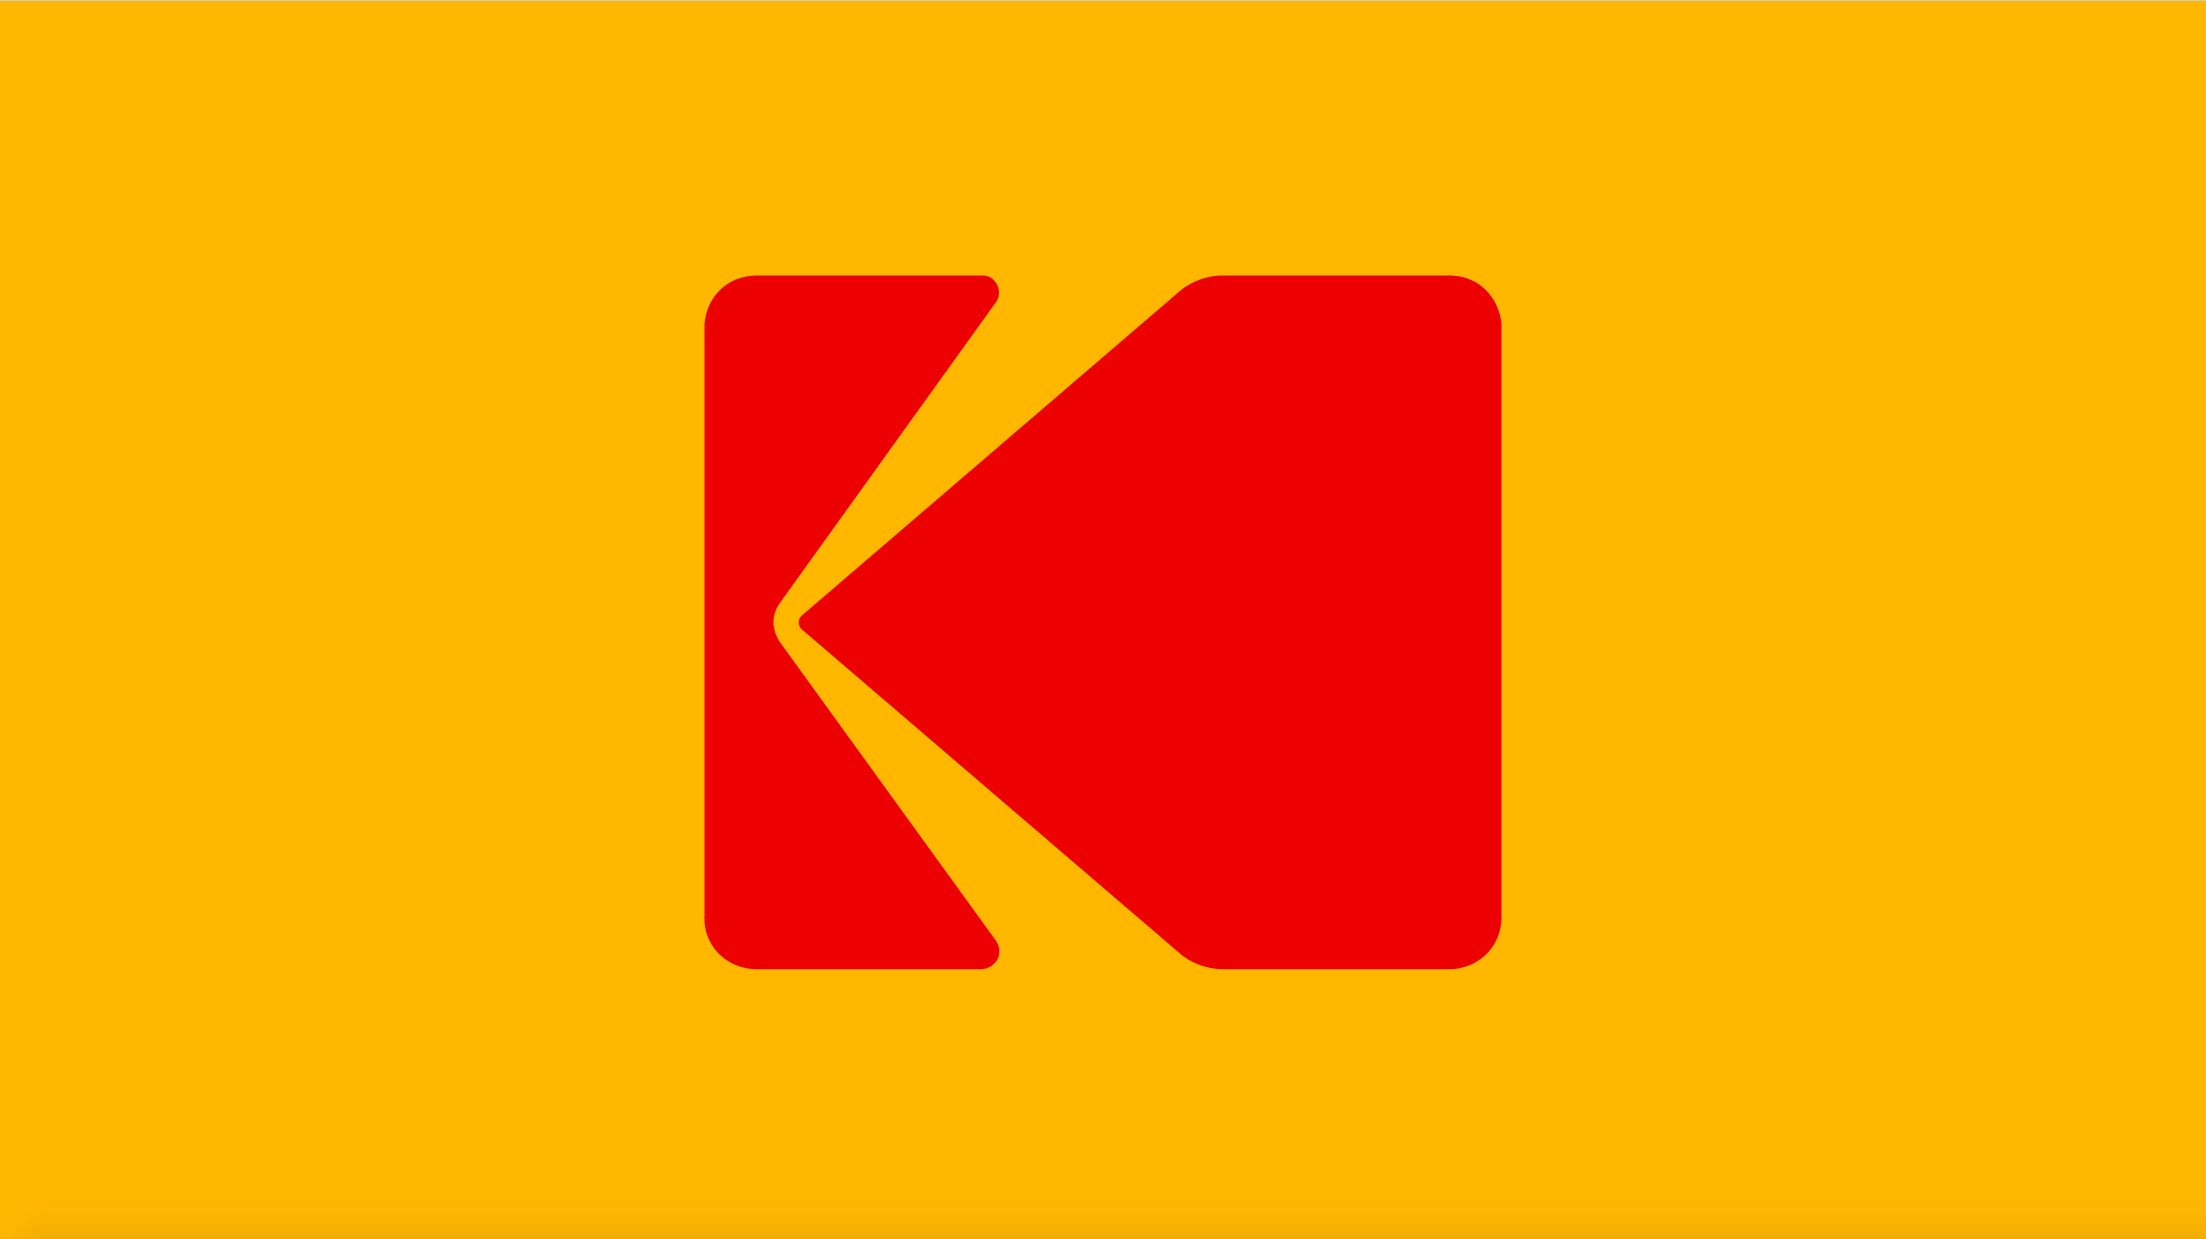 Kodak Logo - Kodak Revives Its Iconic Logo—and Gives It a Little Twist | WIRED